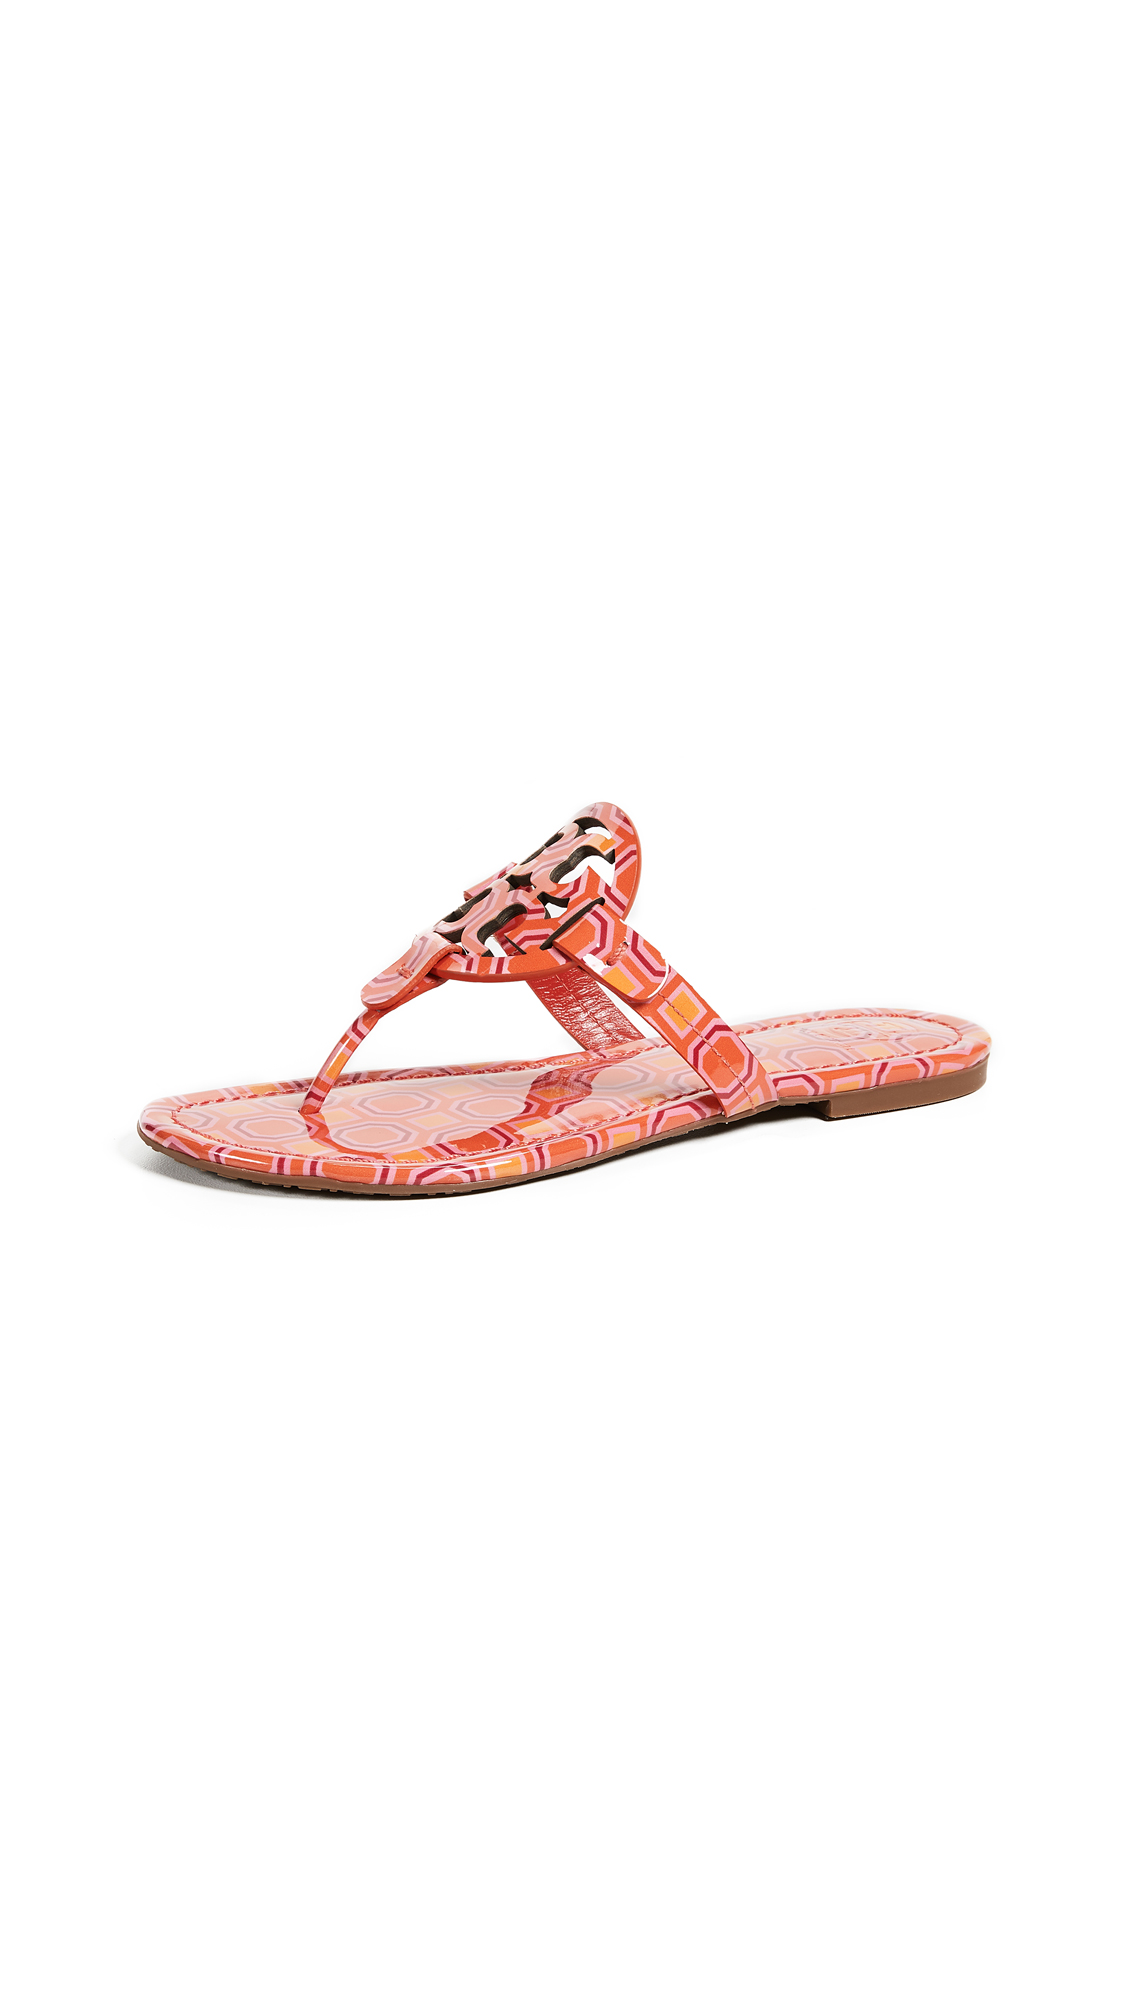 Tory Burch Miller Thong Sandals - Octagon Square